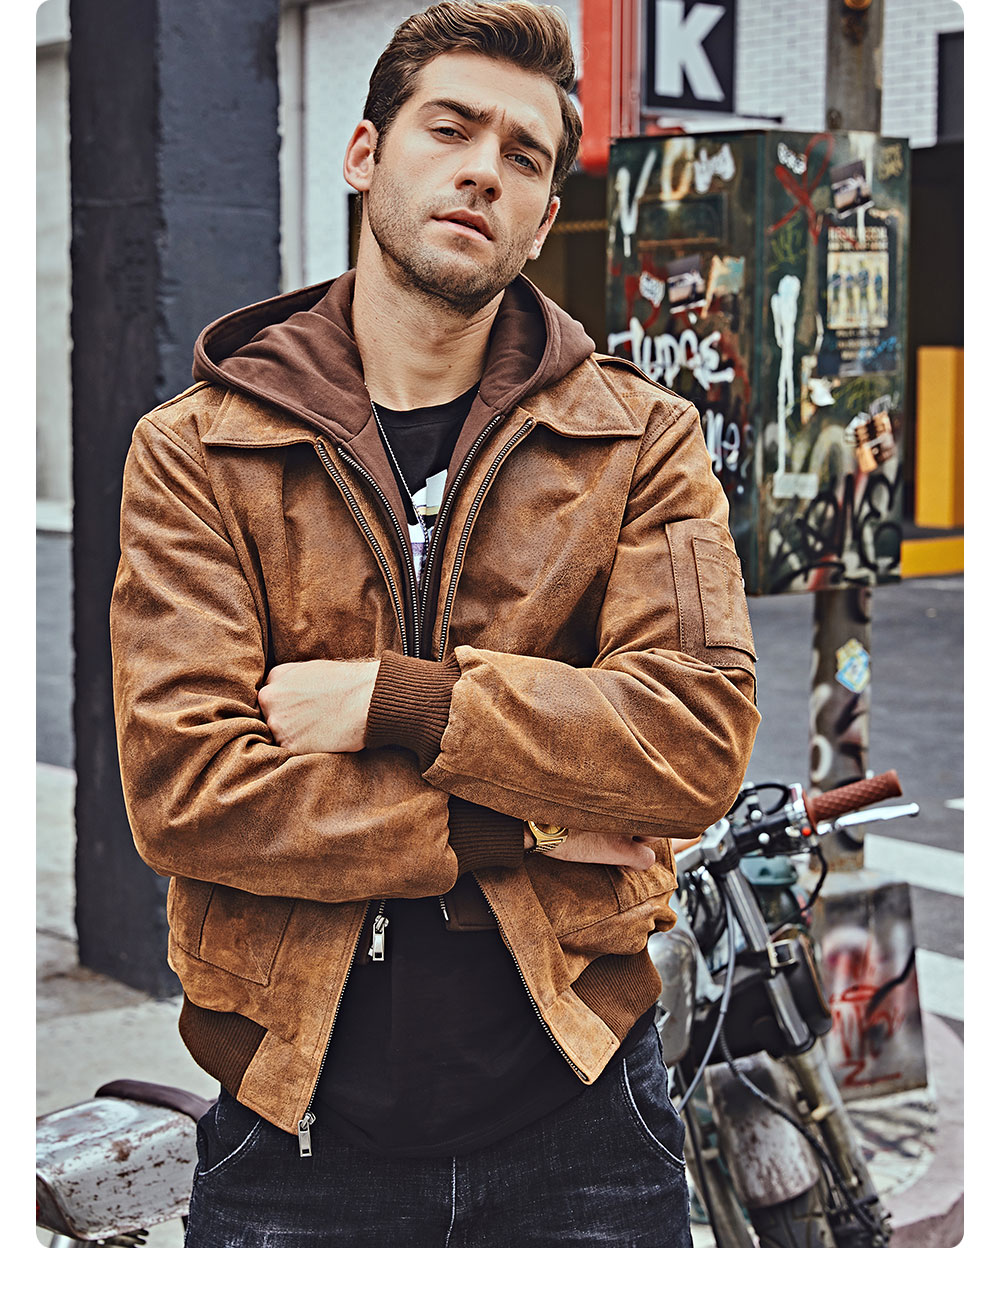 H9359f501b94642e09ca4d9ac62becb7fD FLAVOR New Men's Genuine Leather Bomber Jackets Removable Hood Men Air Forca Aviator winter coat Men Warm Real Leather Jacket